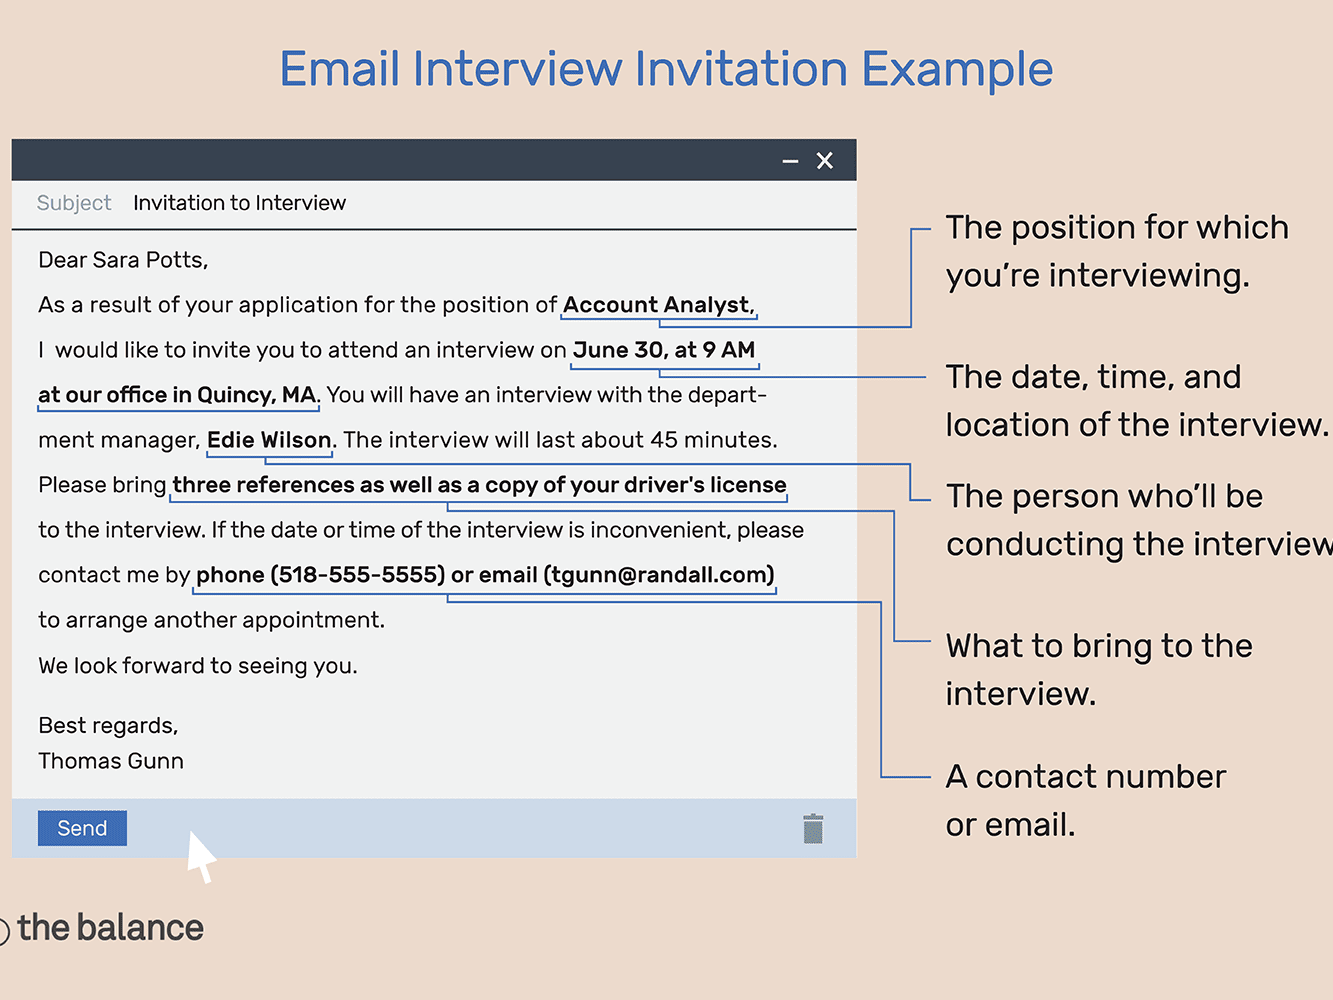 Email Interview Invitation Example